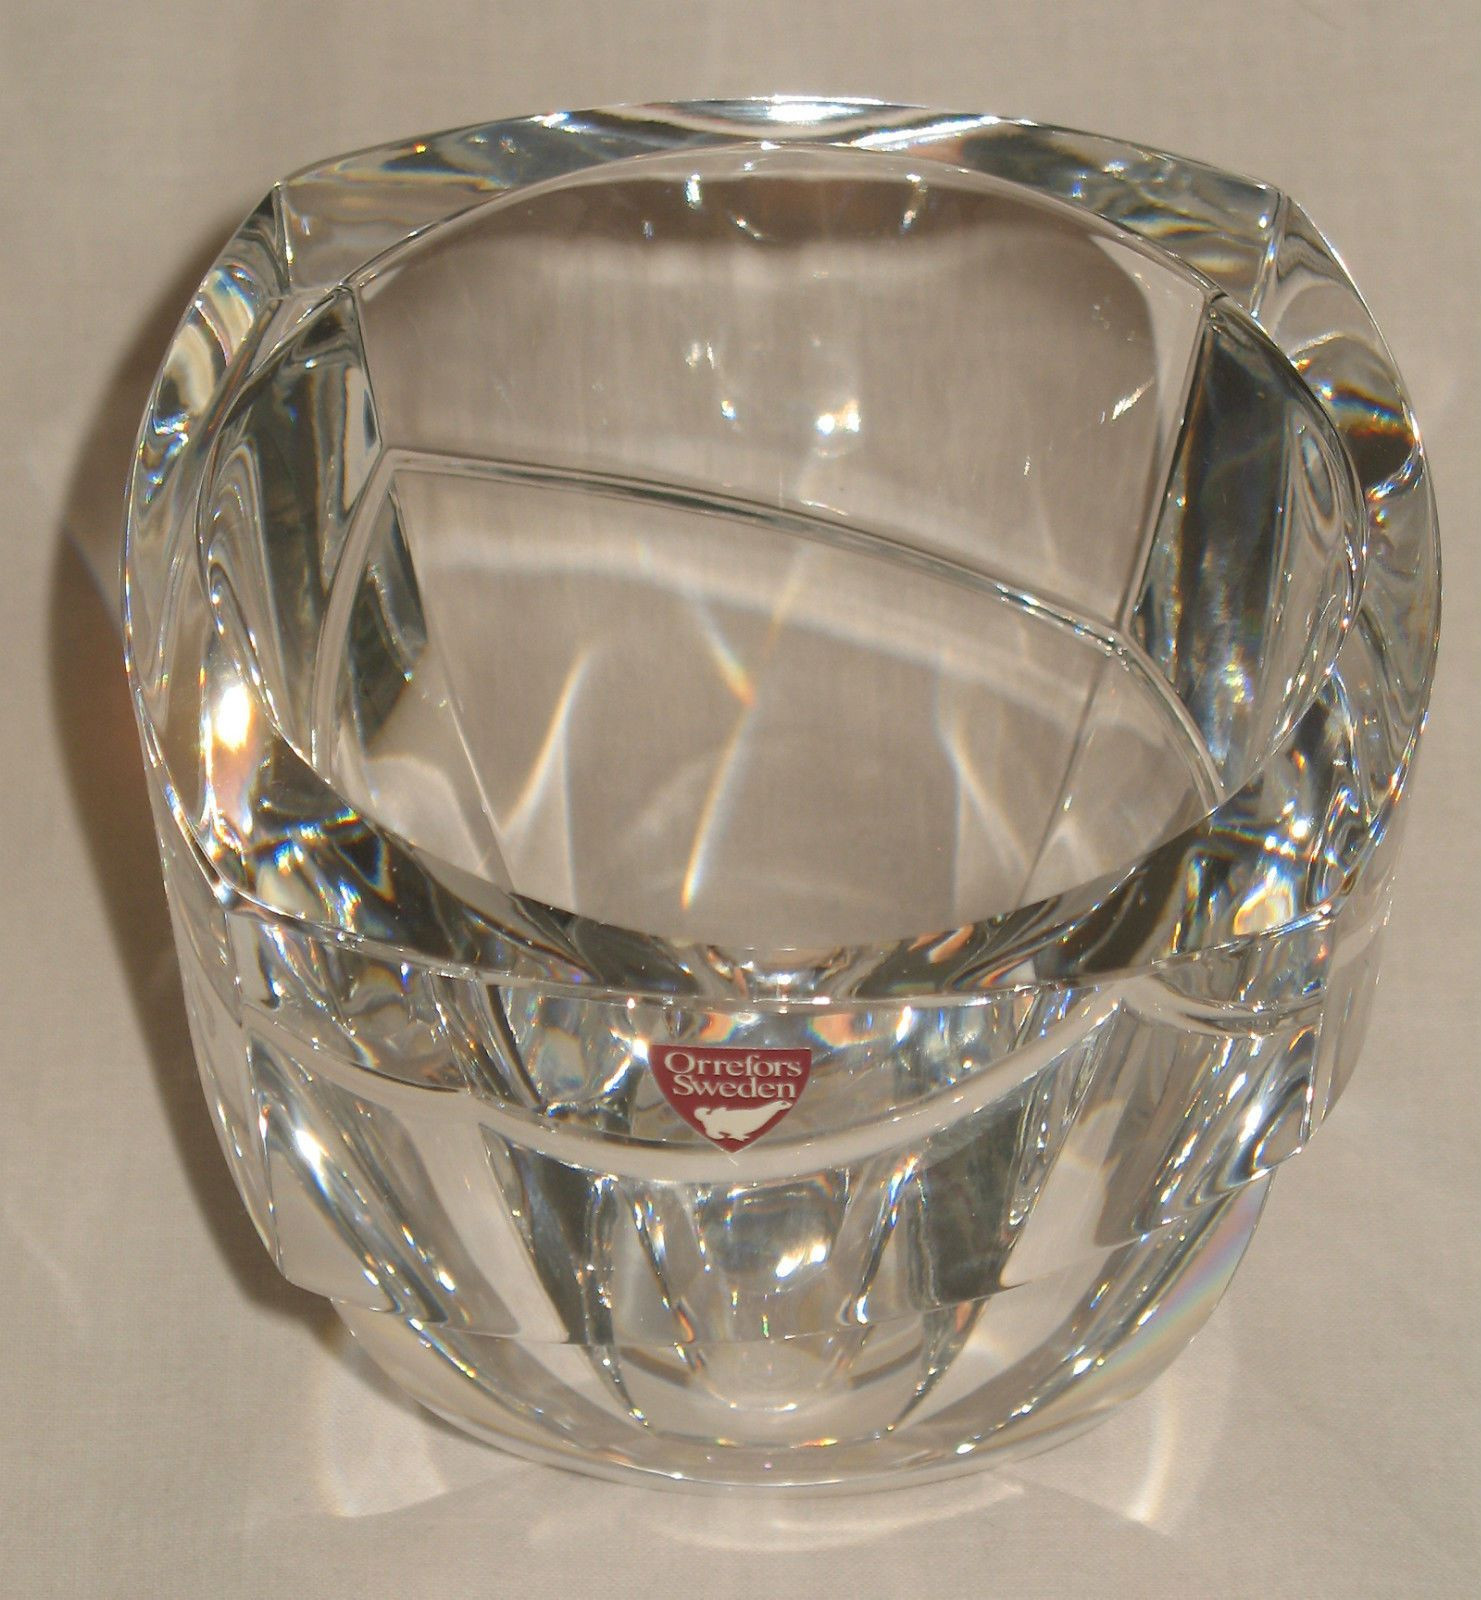 Orrefors Sweden Crystal Vase Of 49 orrefors Sweden Vase the Weekly World within 49 orrefors Sweden Vase